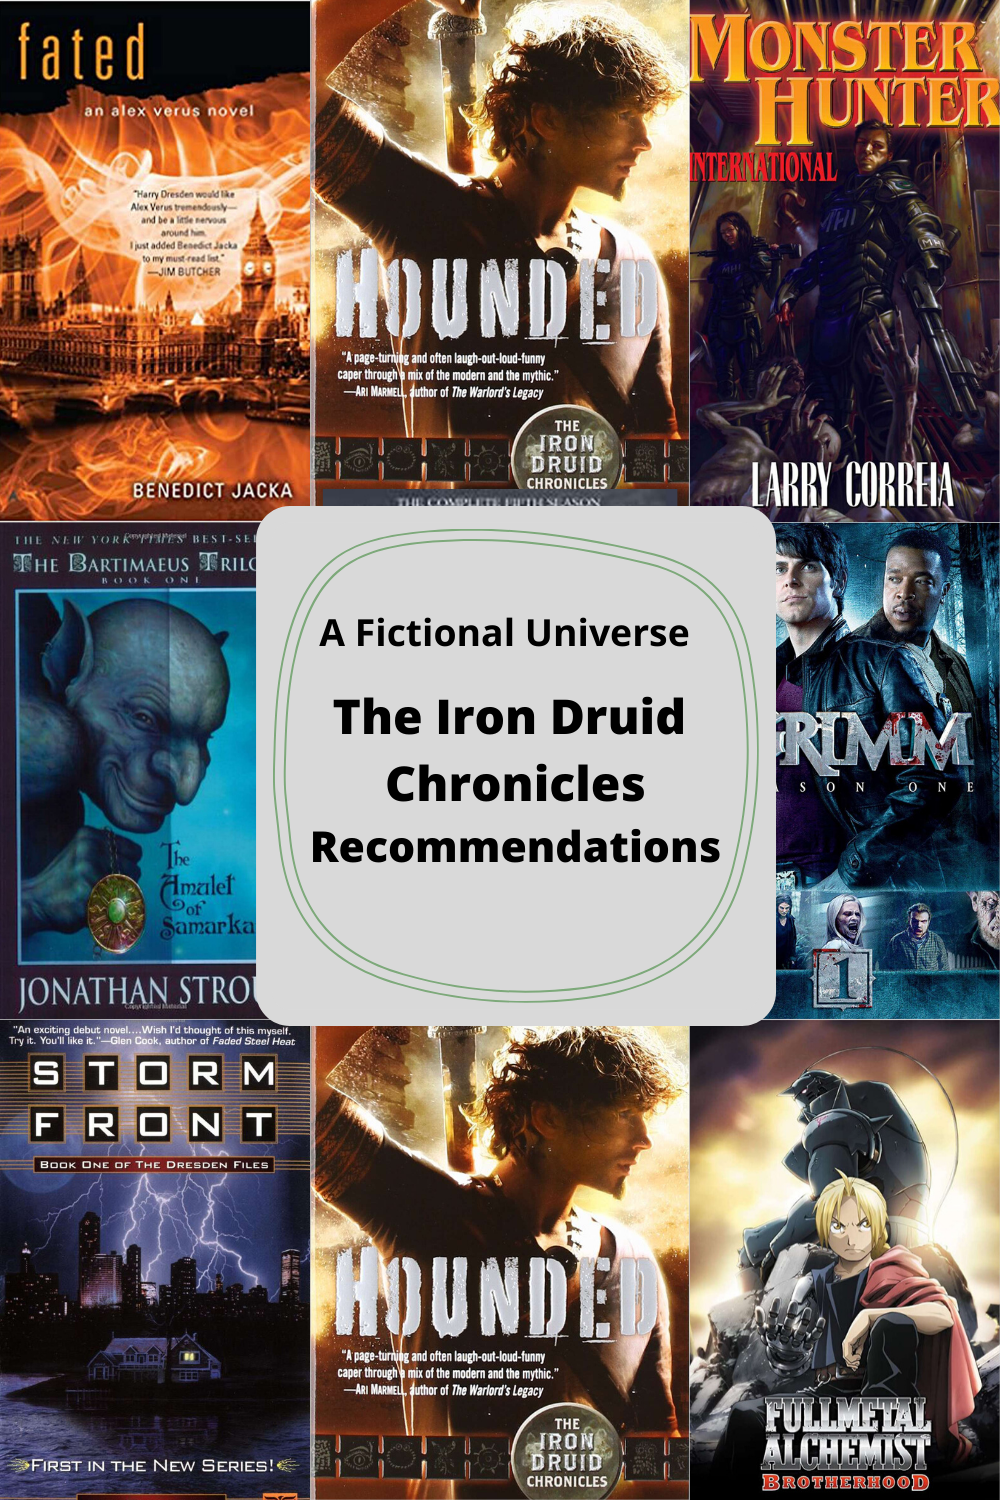 The Iron Druid Chronicles Recommendations Article Image 2